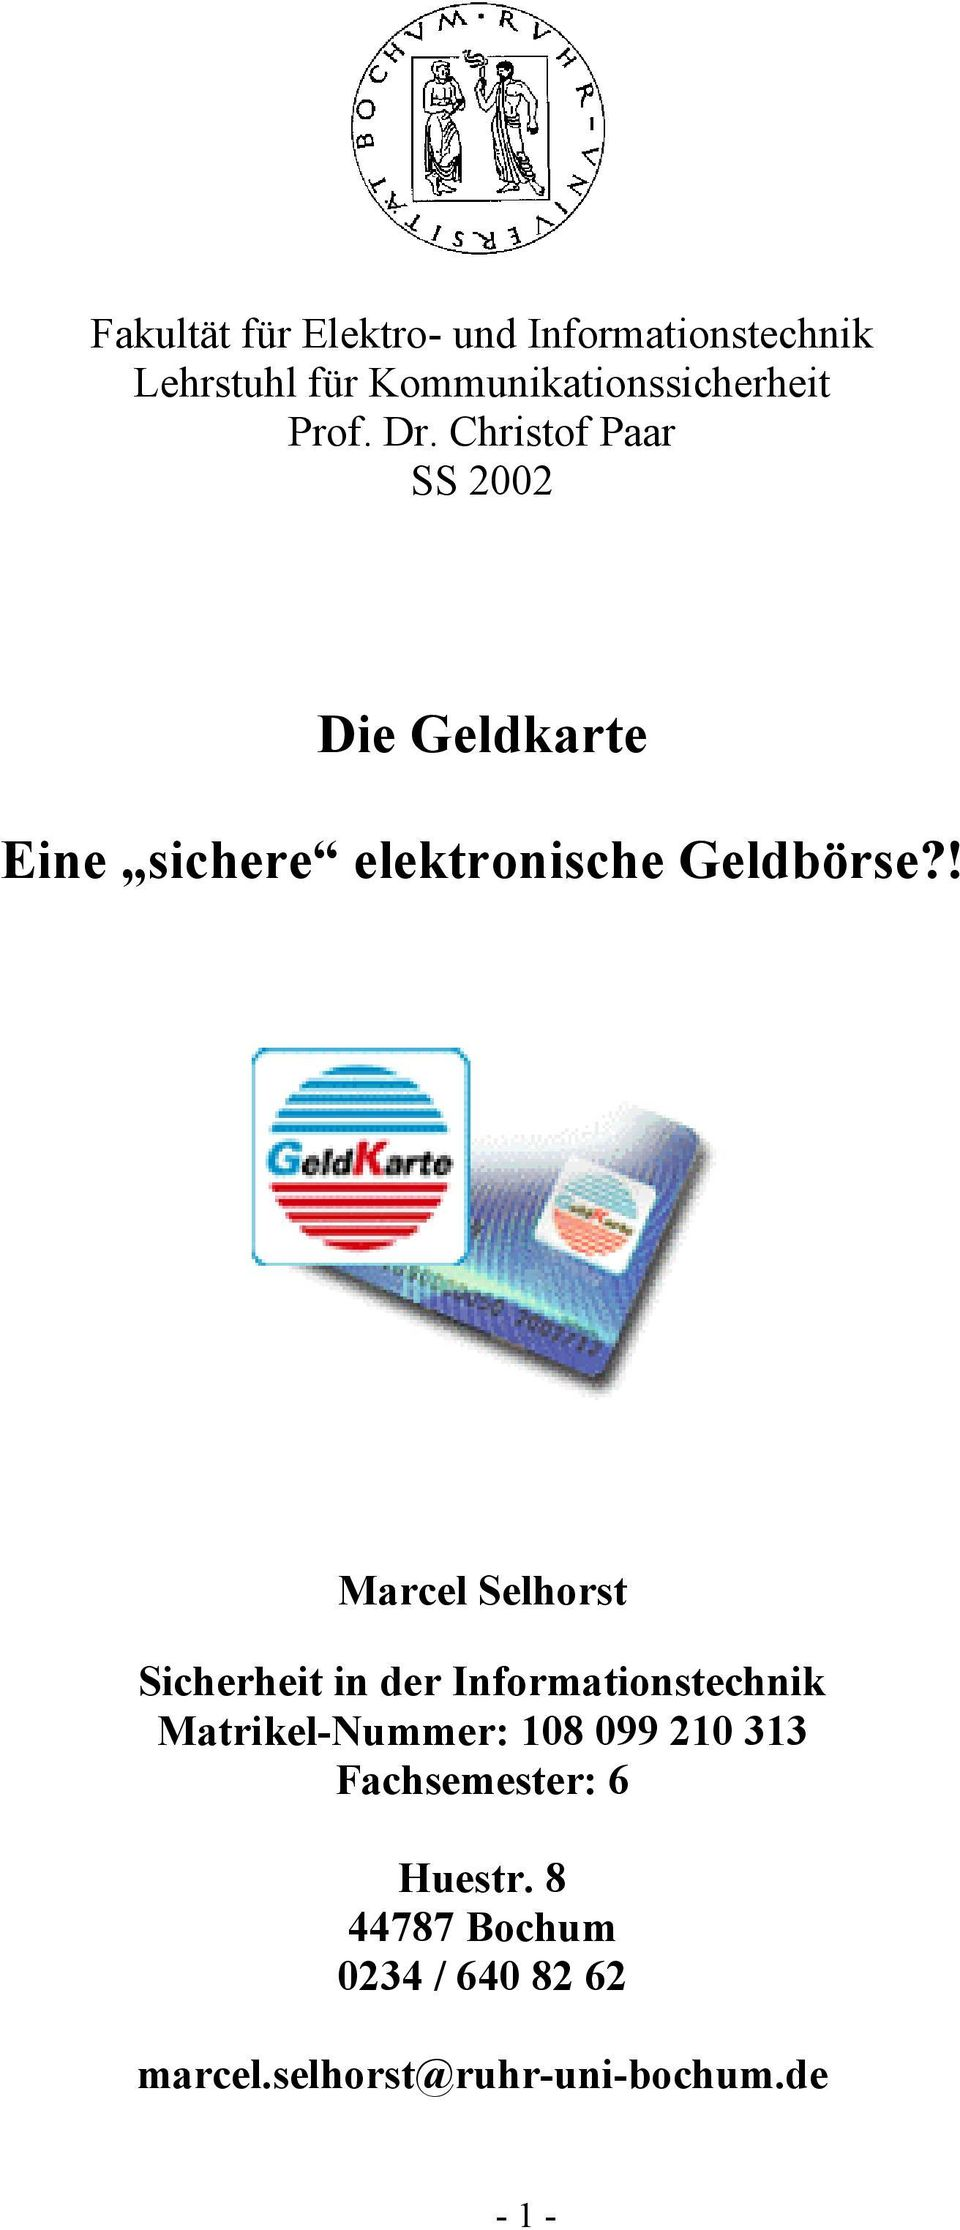 ! Marcel Selhorst Sicherheit in der Informationstechnik Matrikel-Nummer: 108 099 210 313